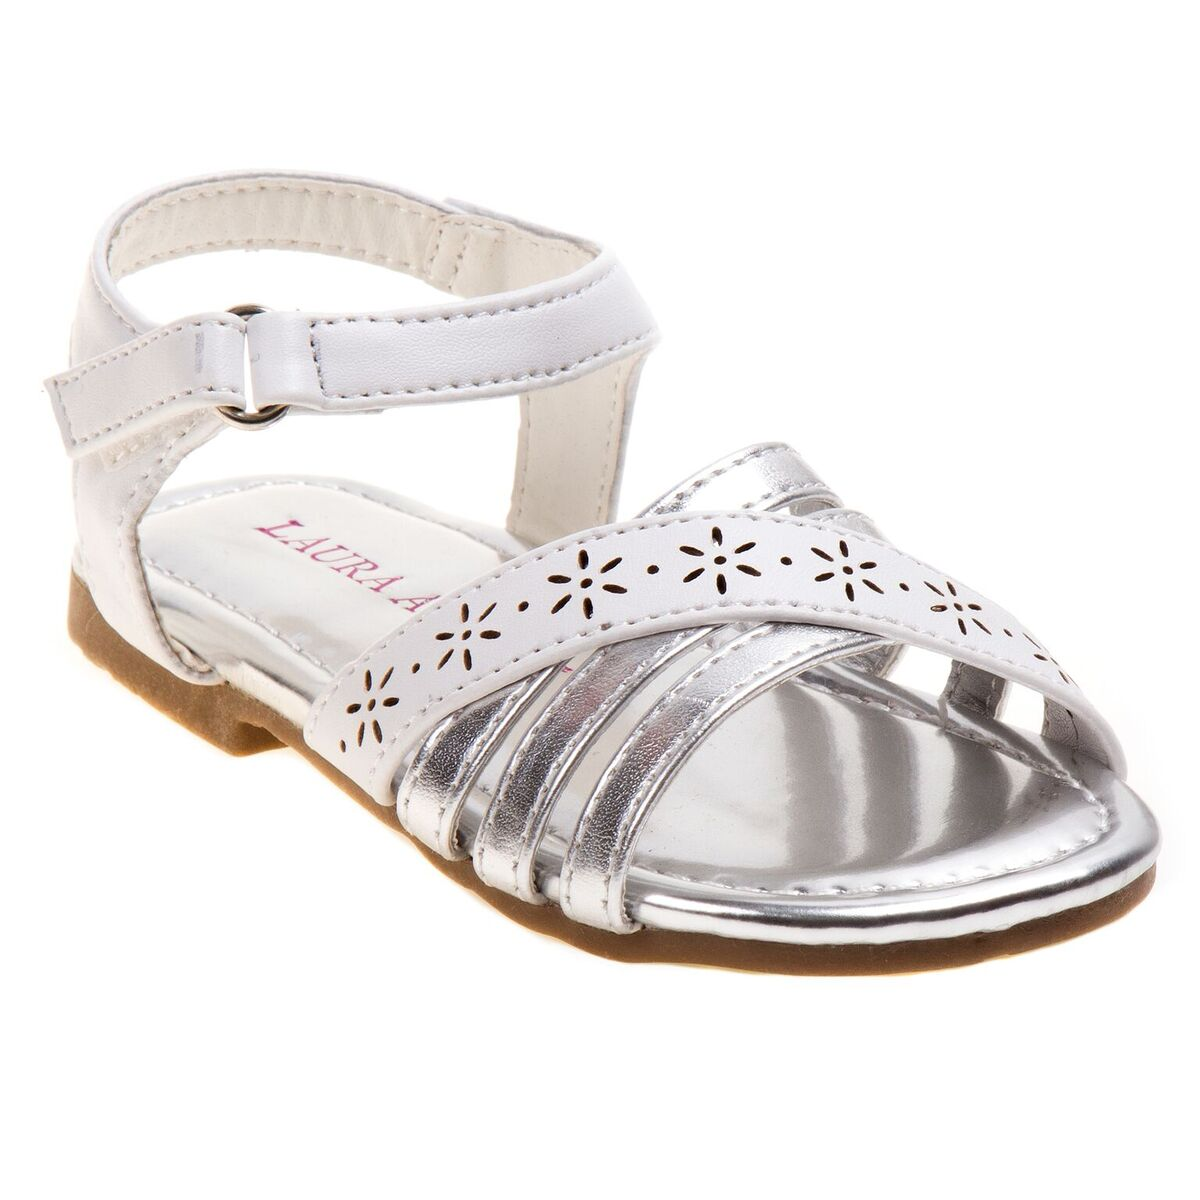 White with Silver Strap Sandal